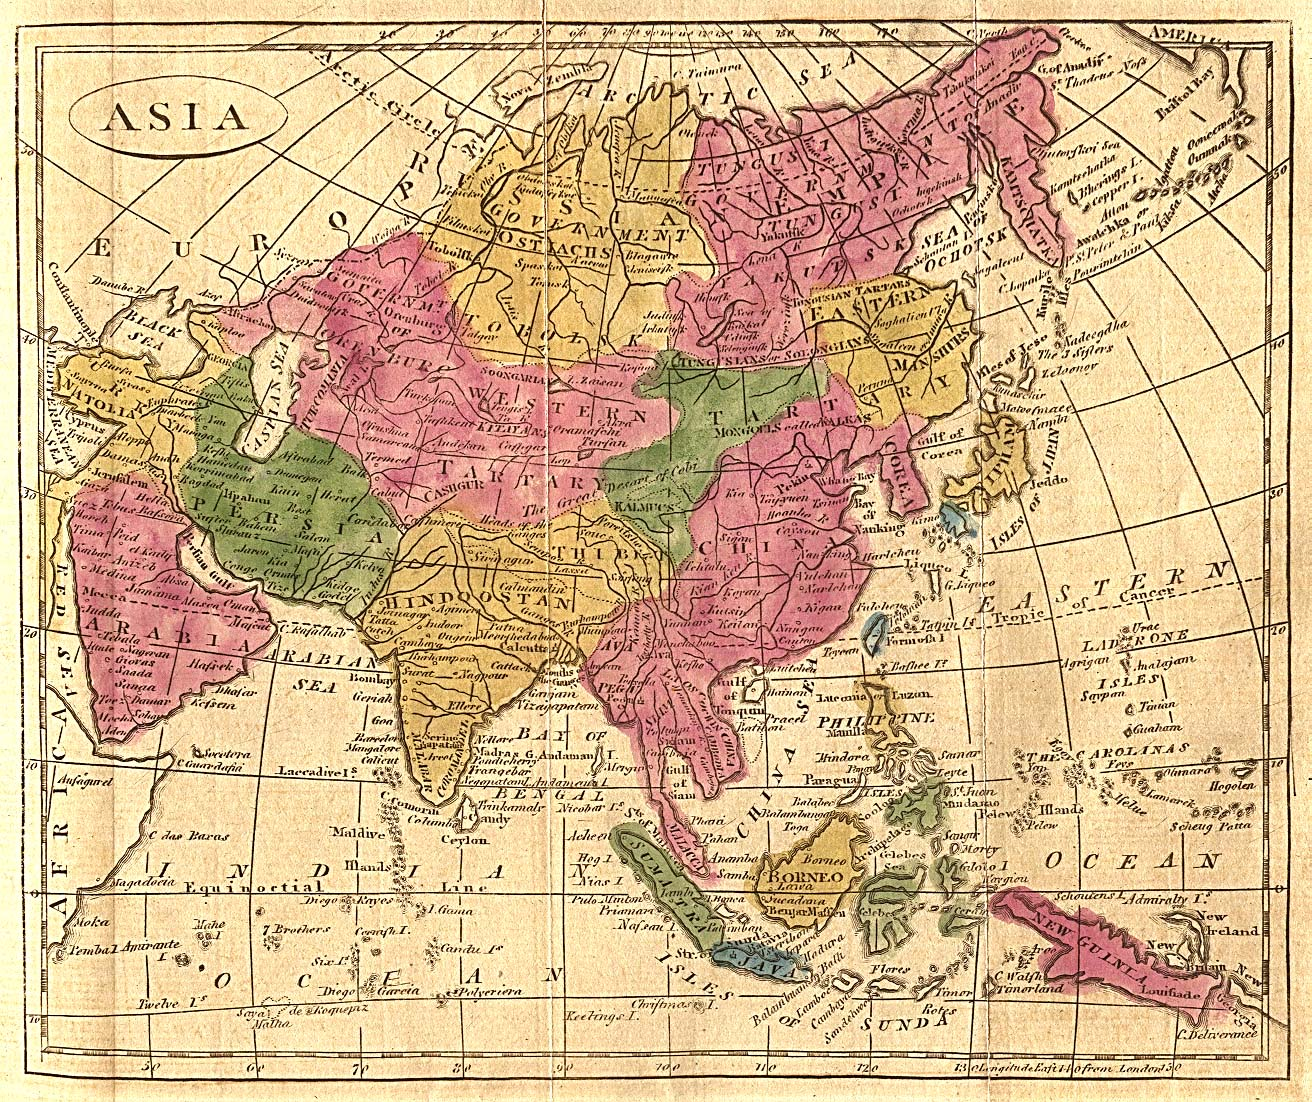 Asia Map 1808